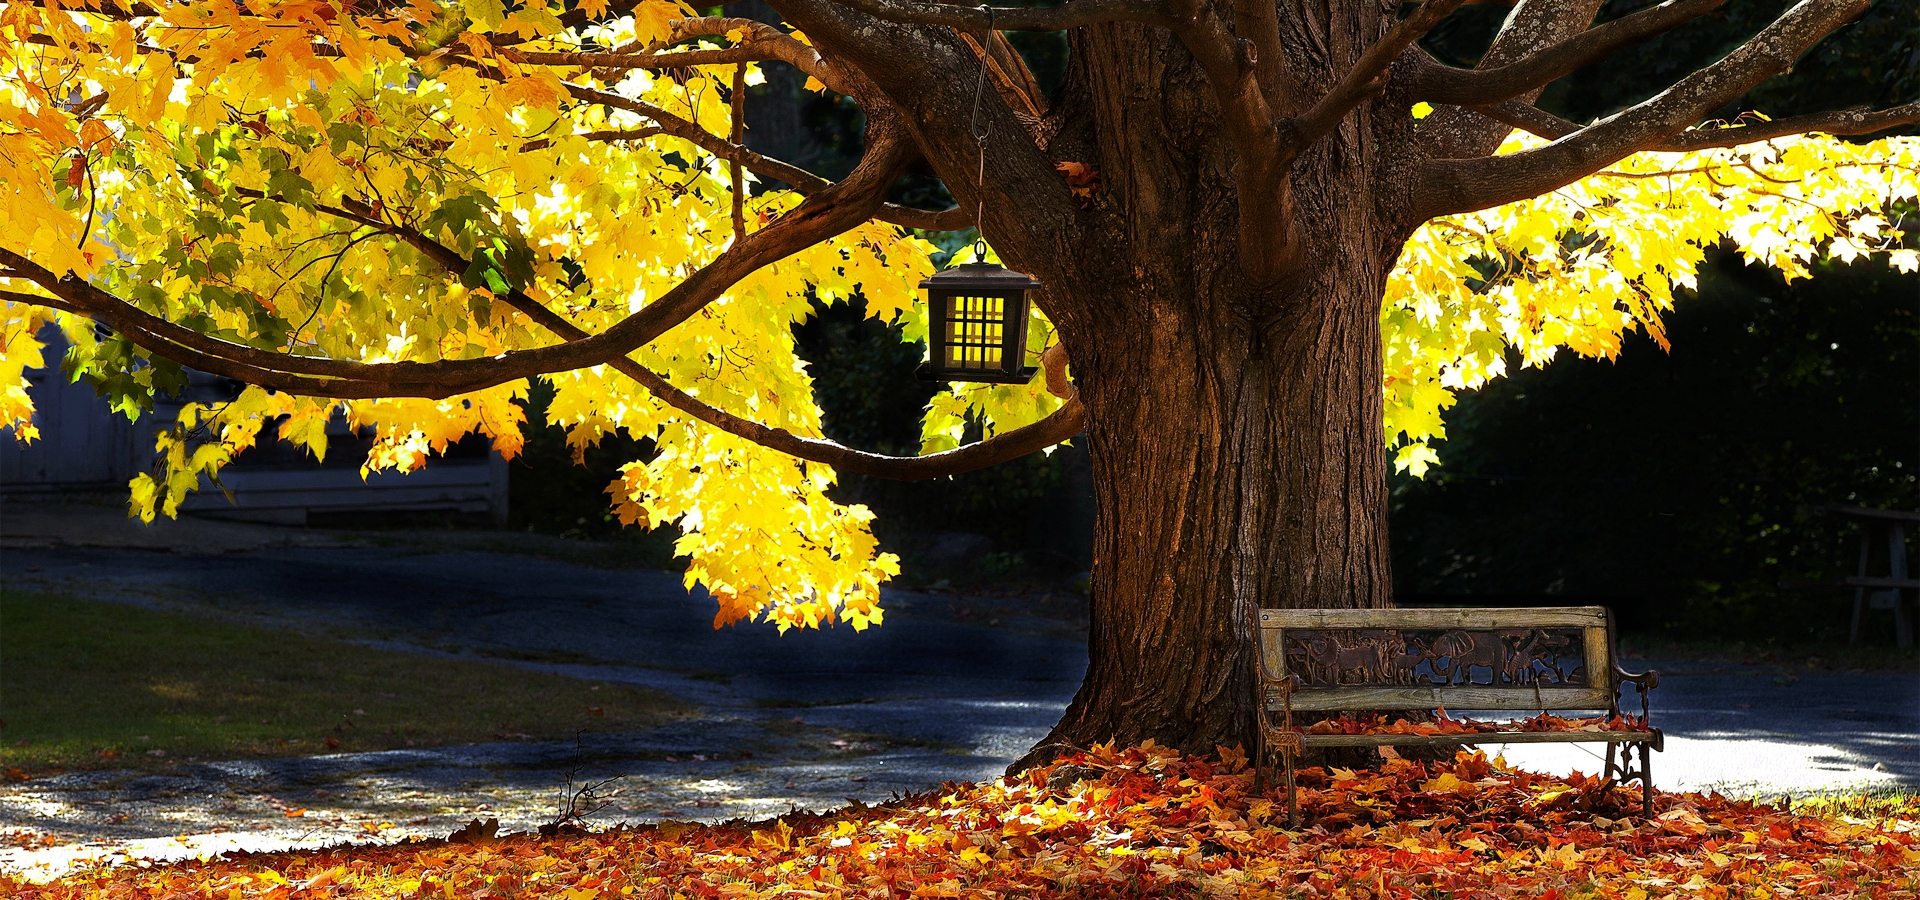 Park Bench, Park, Bench, Autumn Background Image For Free